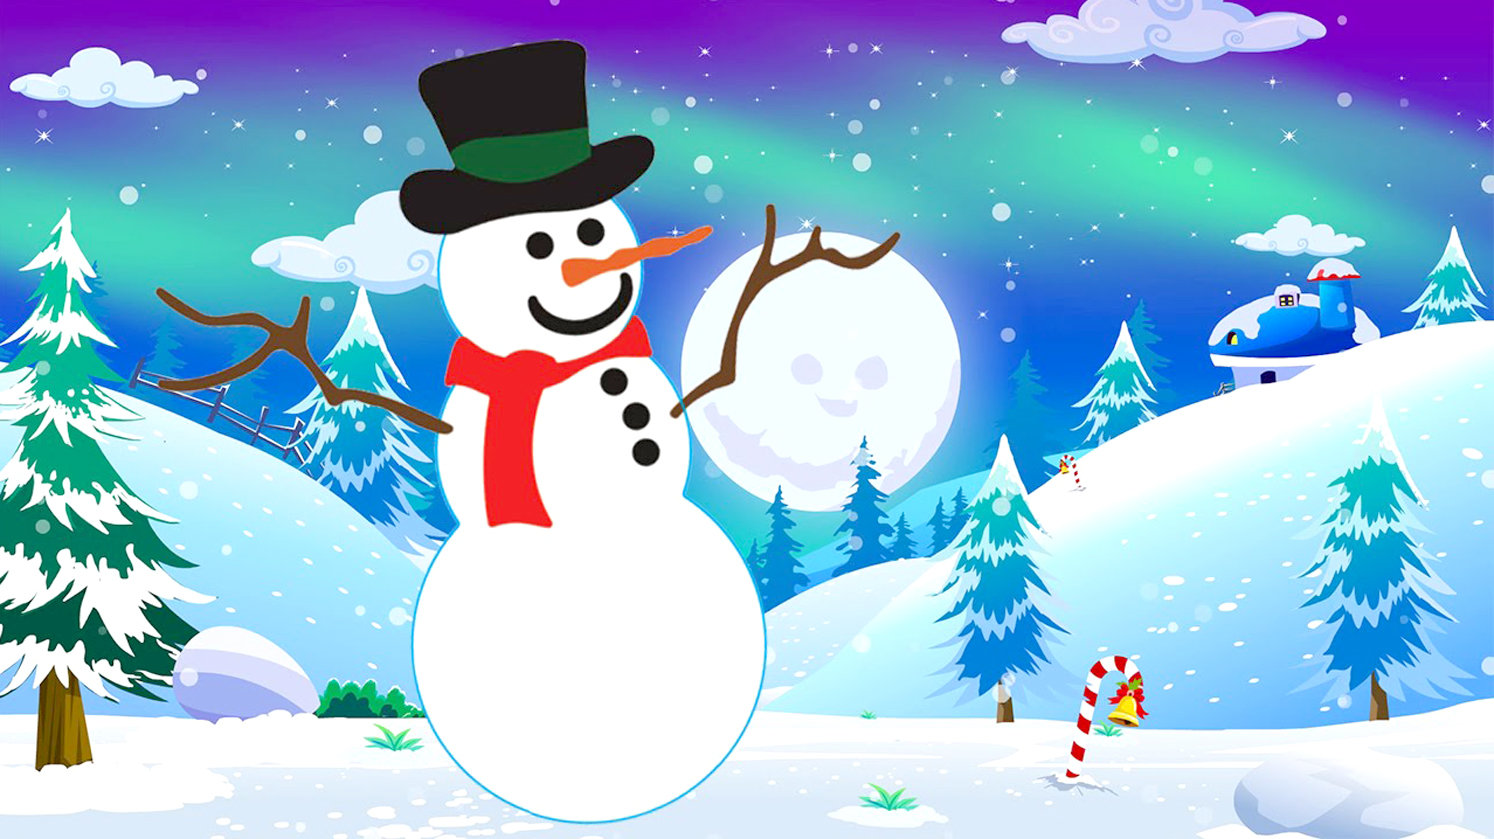 frosty the snowman in a rare interview recently talked with a cleveland daily banner